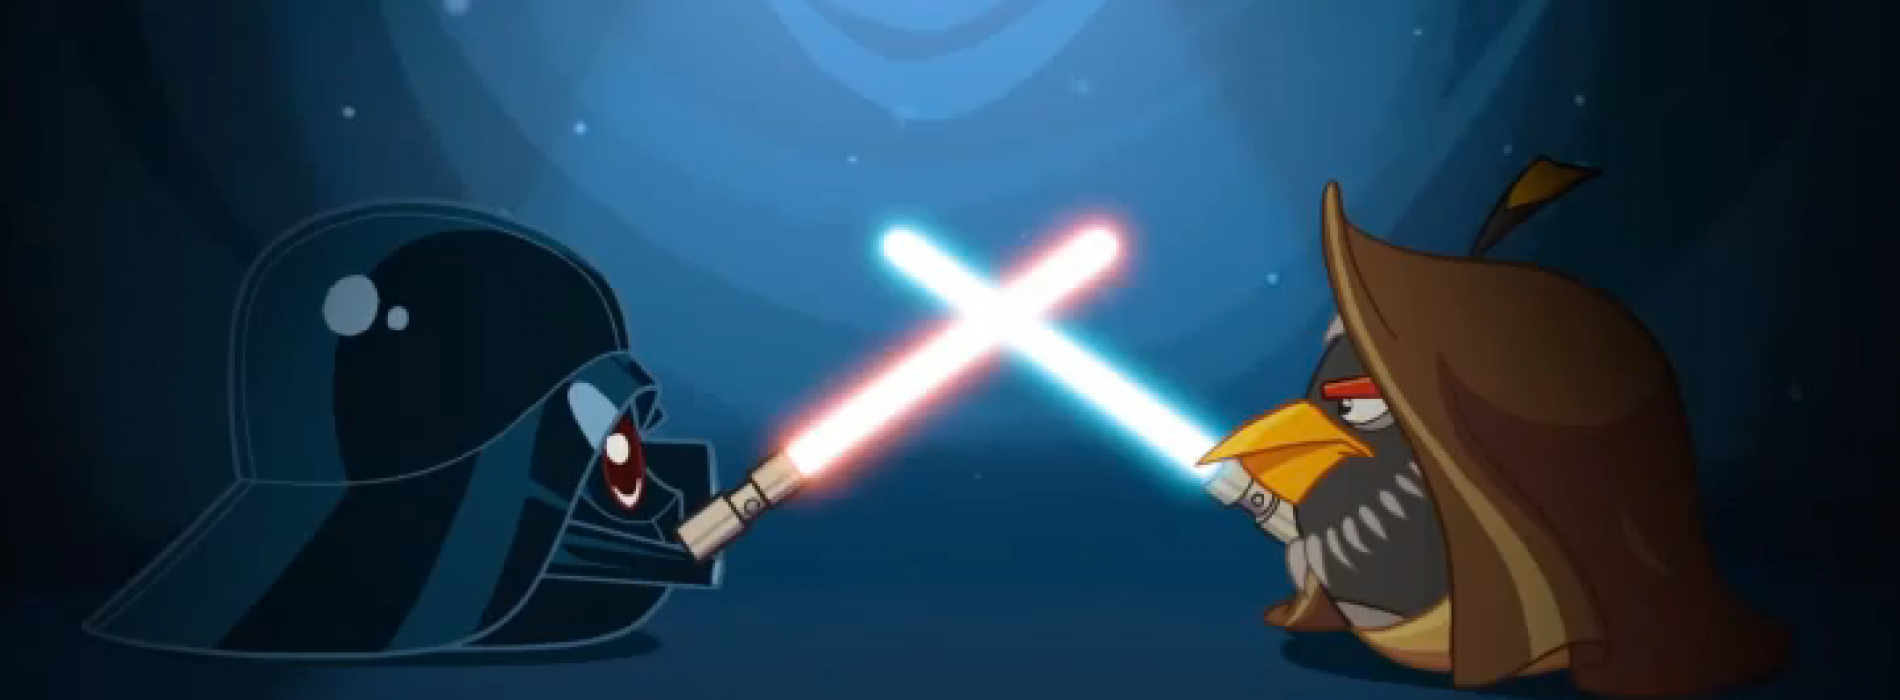 Obi-Wan and Darth Vader square off in latest Angry Birds clip